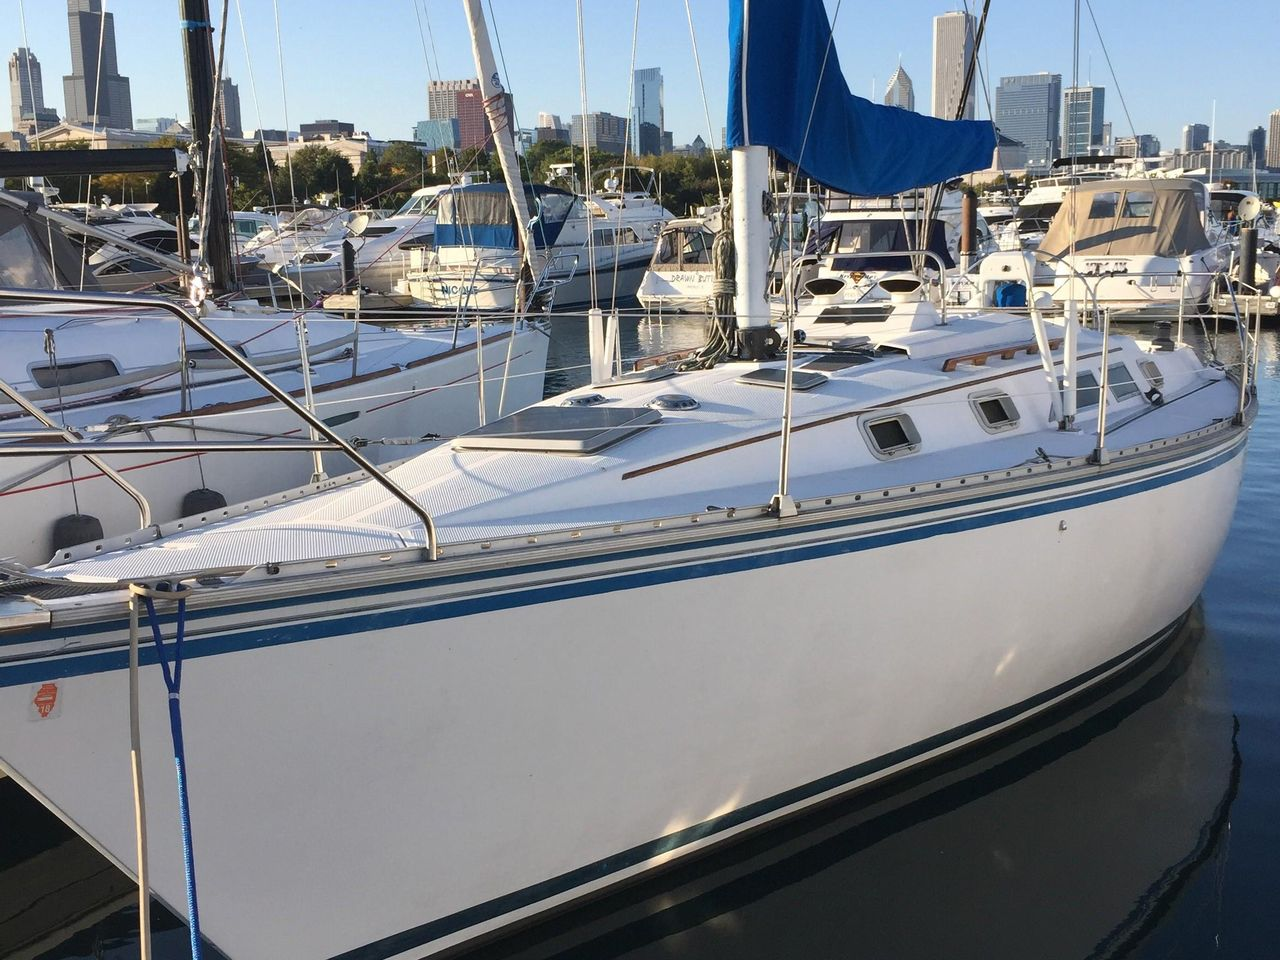 1983 Used Hunter 34 Cruiser Sailboat For Sale 15 500